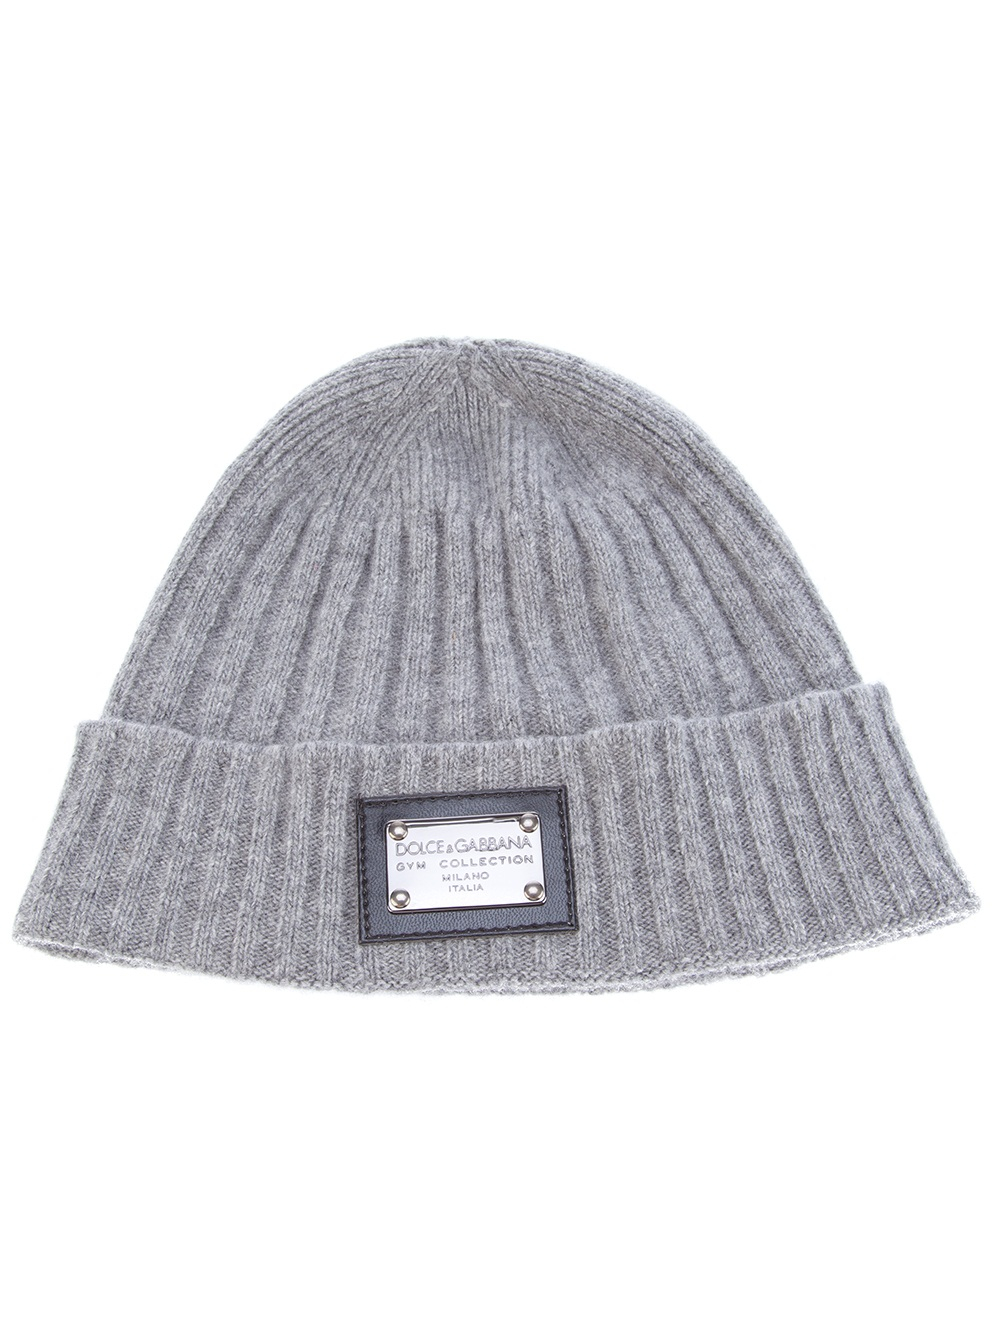 95bbfe1a40e Dolce   Gabbana Ribbed Beanie in Gray for Men - Lyst